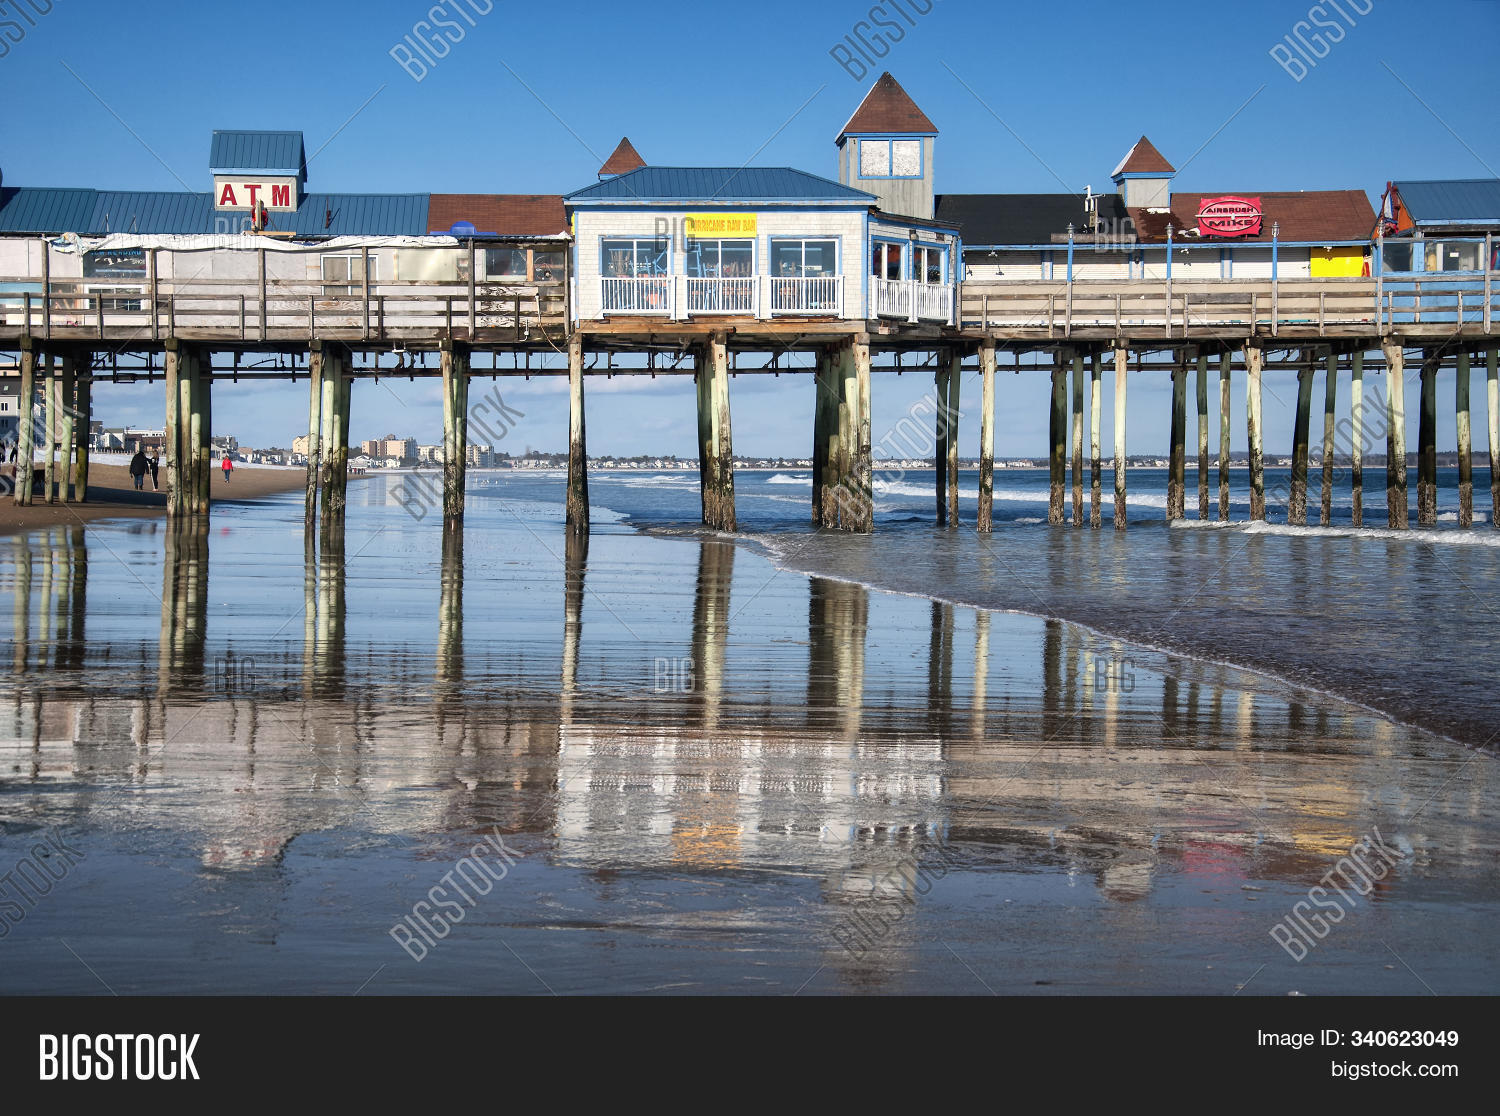 Old Orchard Beach Image Photo Free